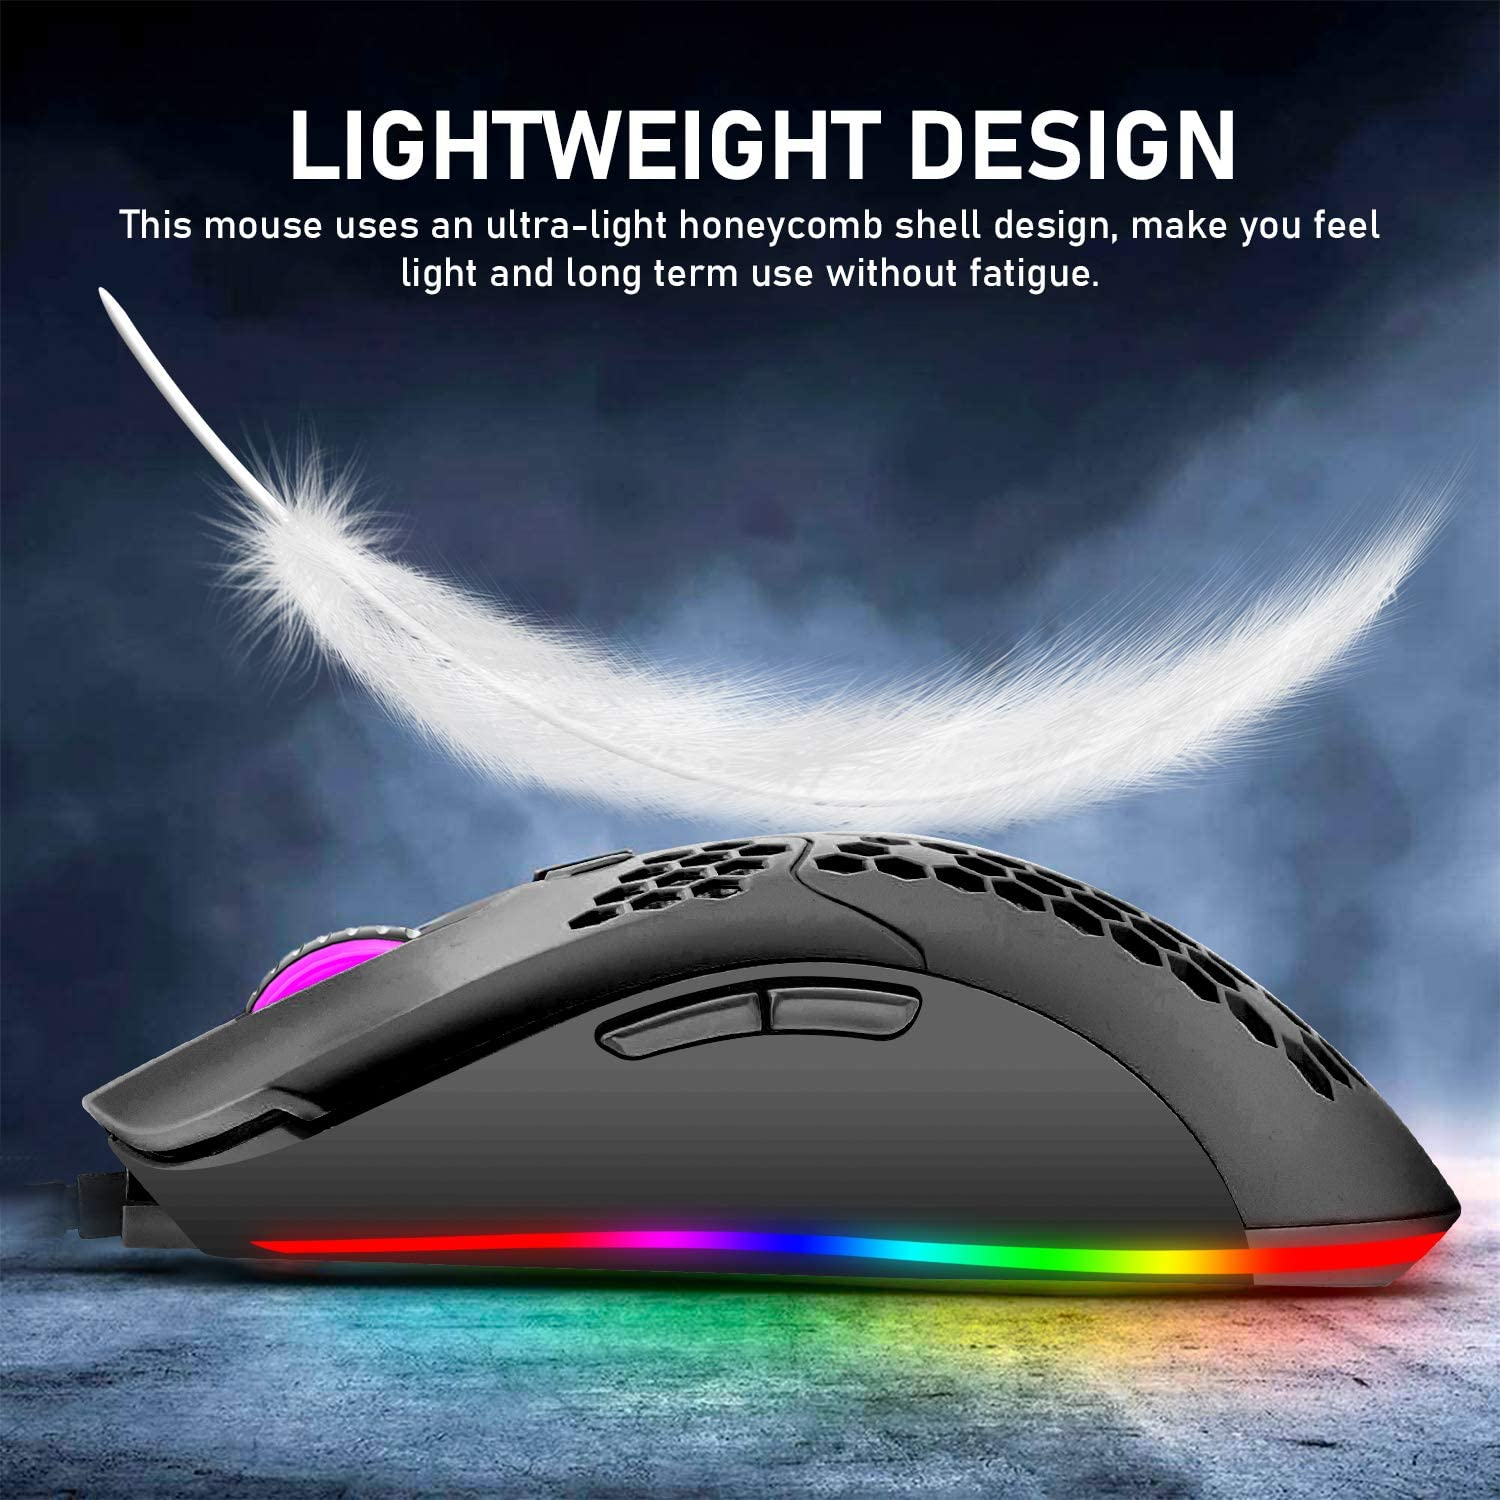 Mechanical Gaming Keyboard Blue Switch Mini 82 Keys Wired Rainbow LED Backlit Keyboard,Lightweight Gaming Mouse 6400DPI Honeycomb Optical,Gaming Mouse Pad for PC Gamers(Black)